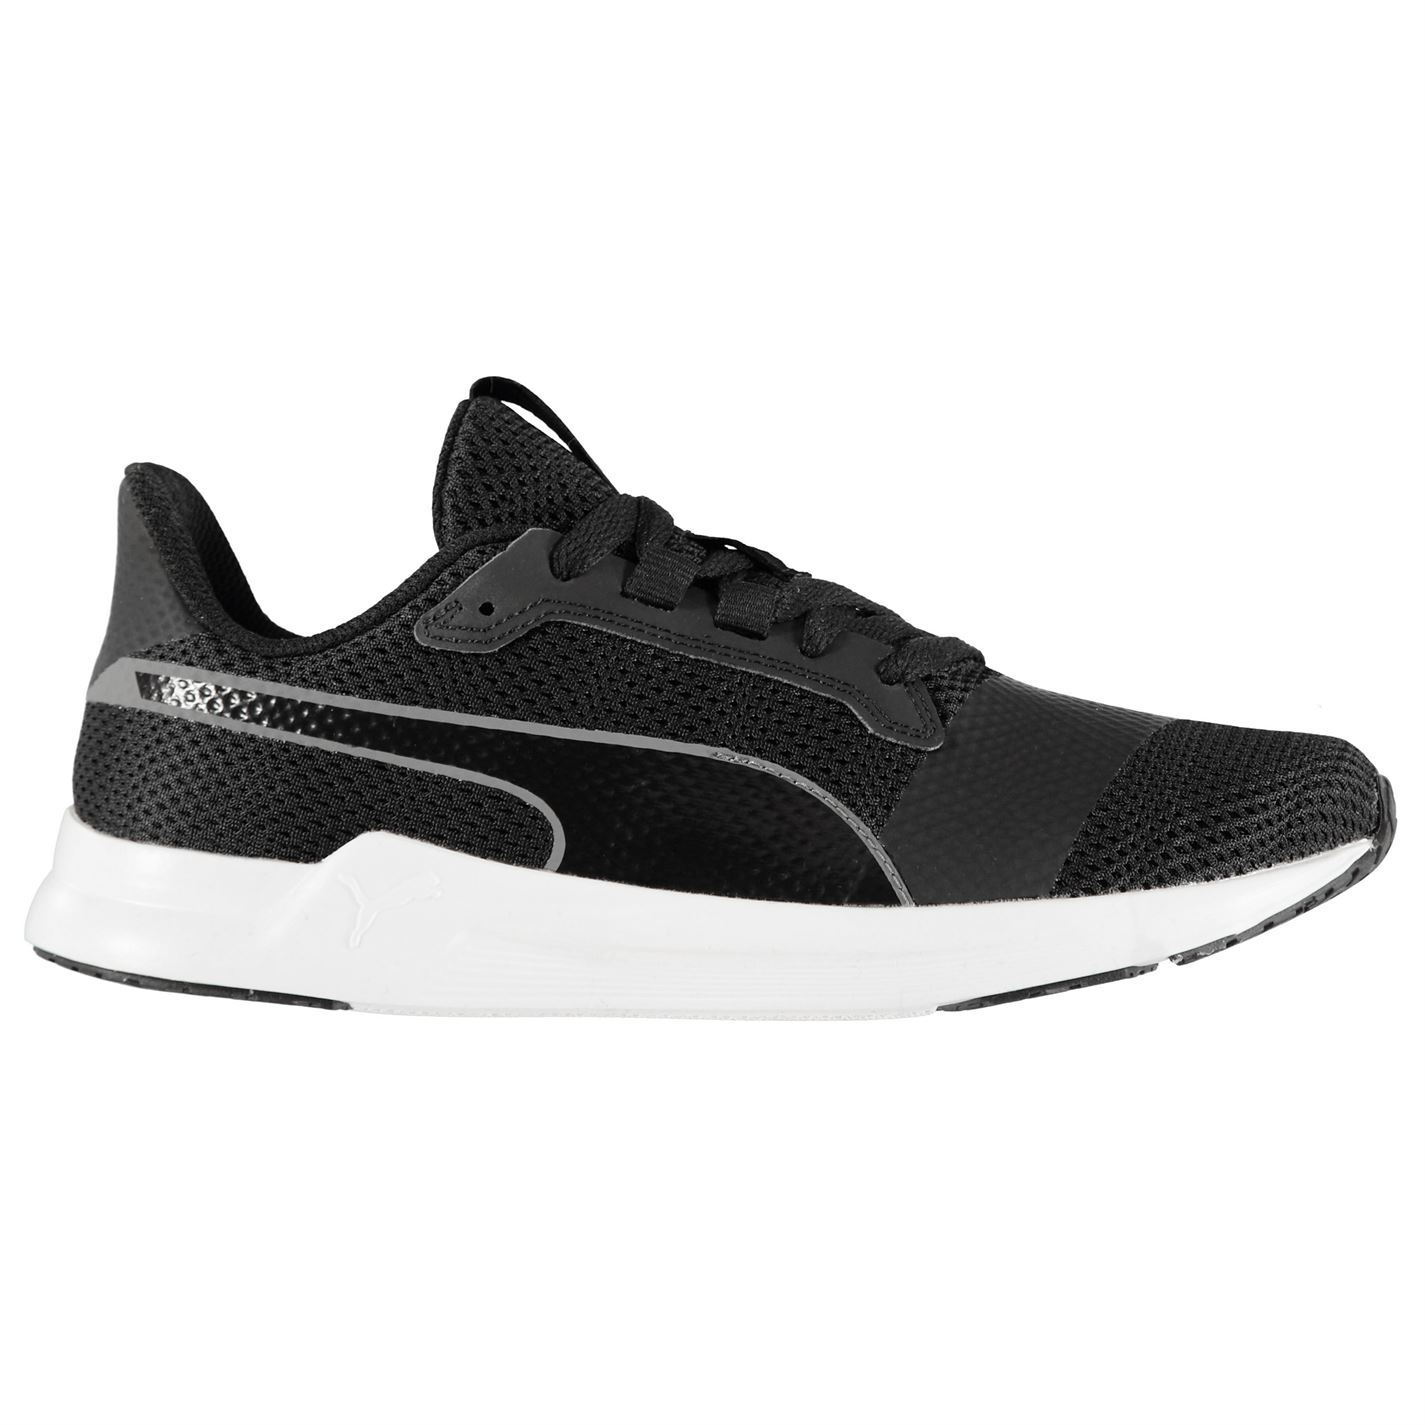 Details about Puma Flex XT Active Womens Trainers Shoes Ladies Running Sneakers Footwear